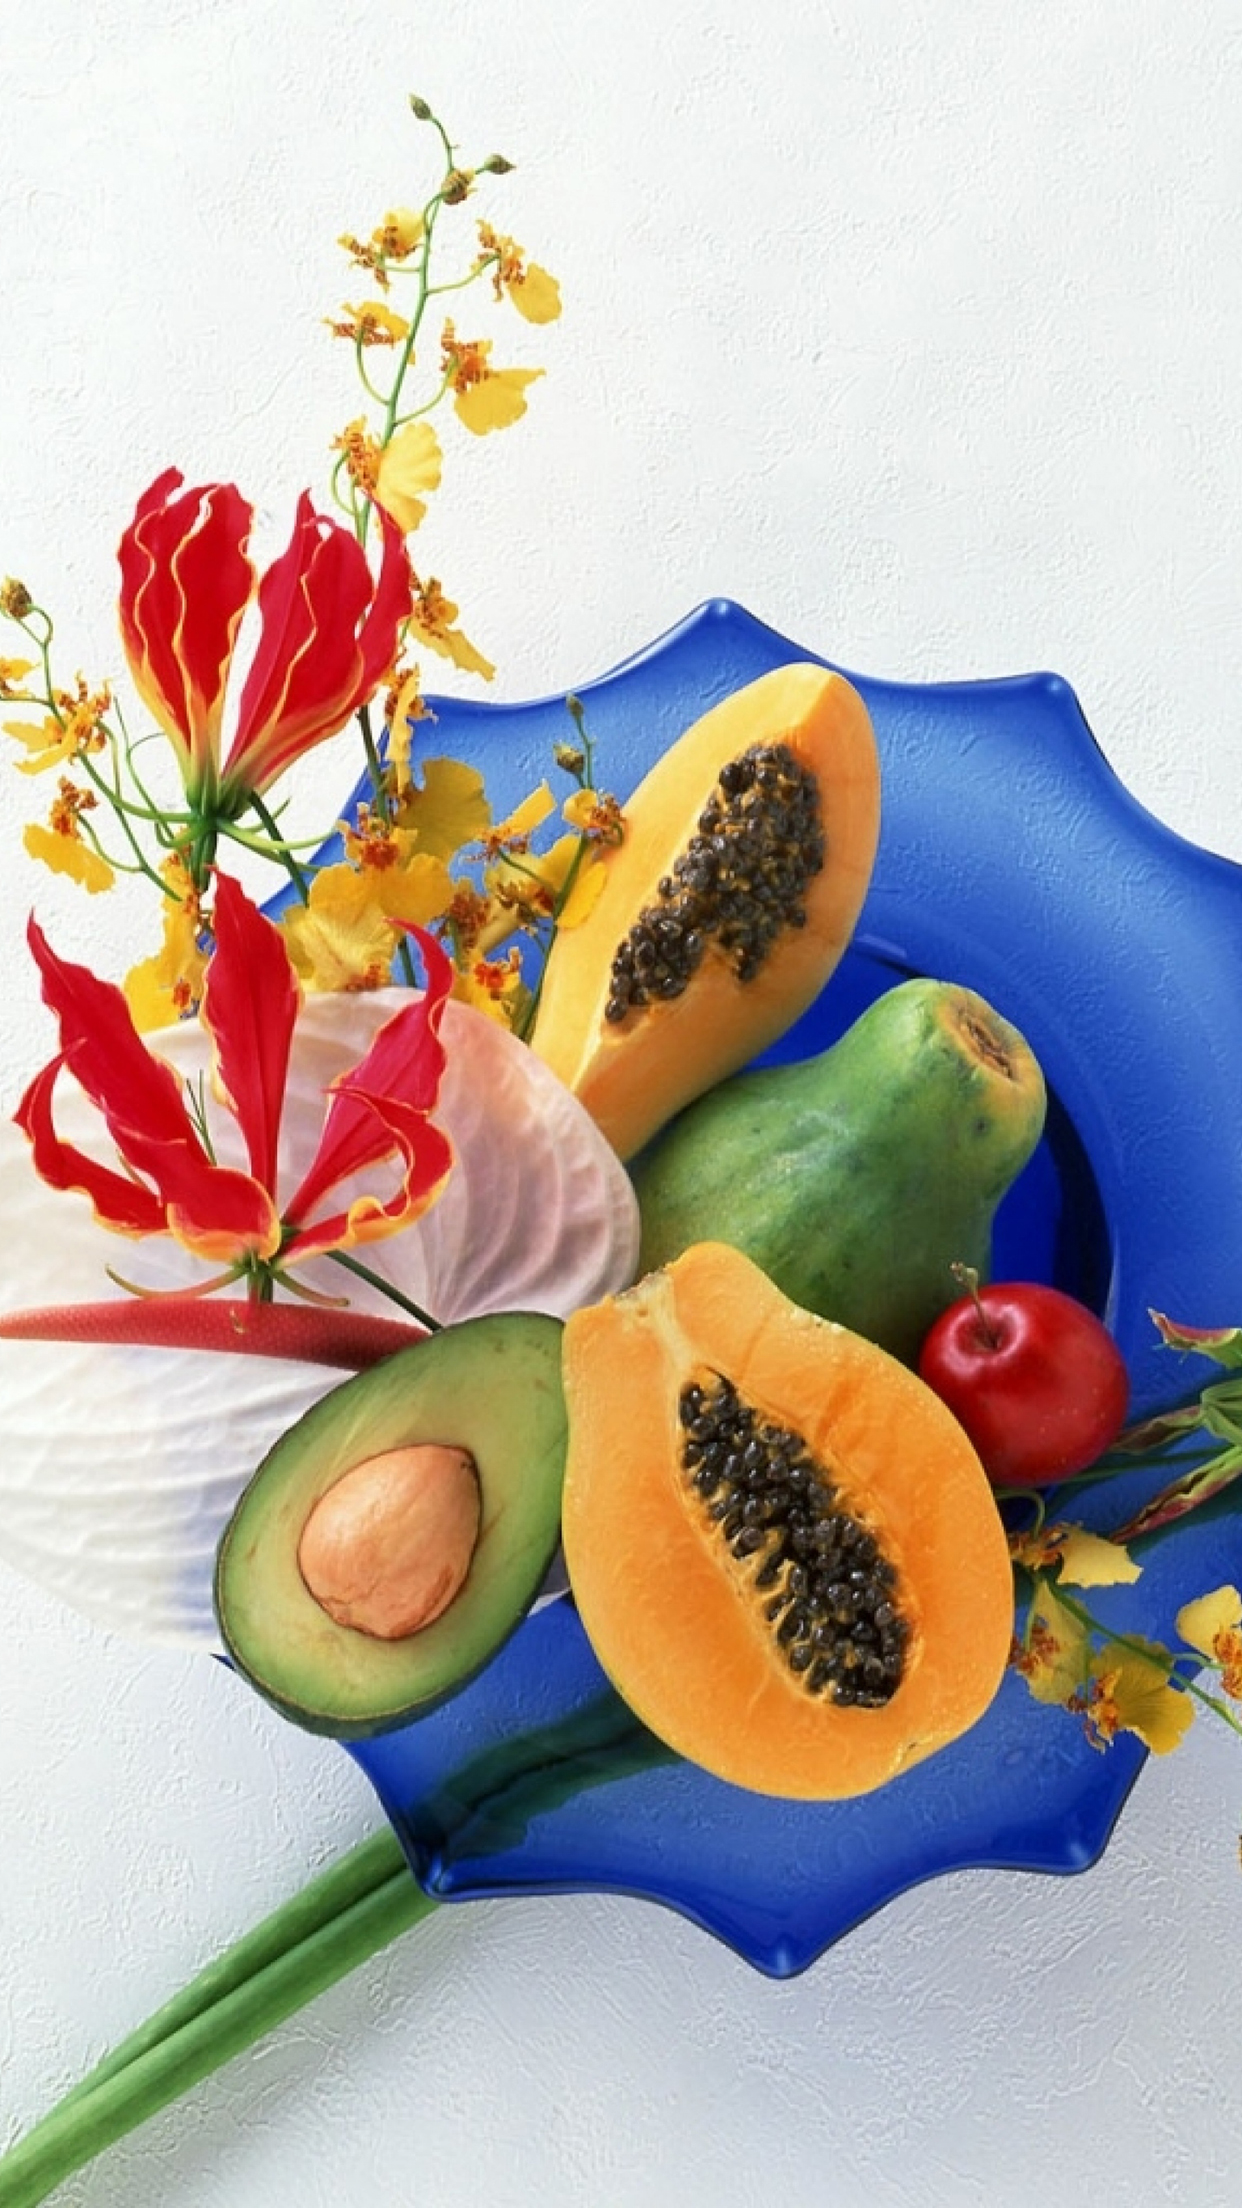 Fruits Dishes Fruits 3Wallpapers iPhone Parallax Fruits : Dishes Fruits